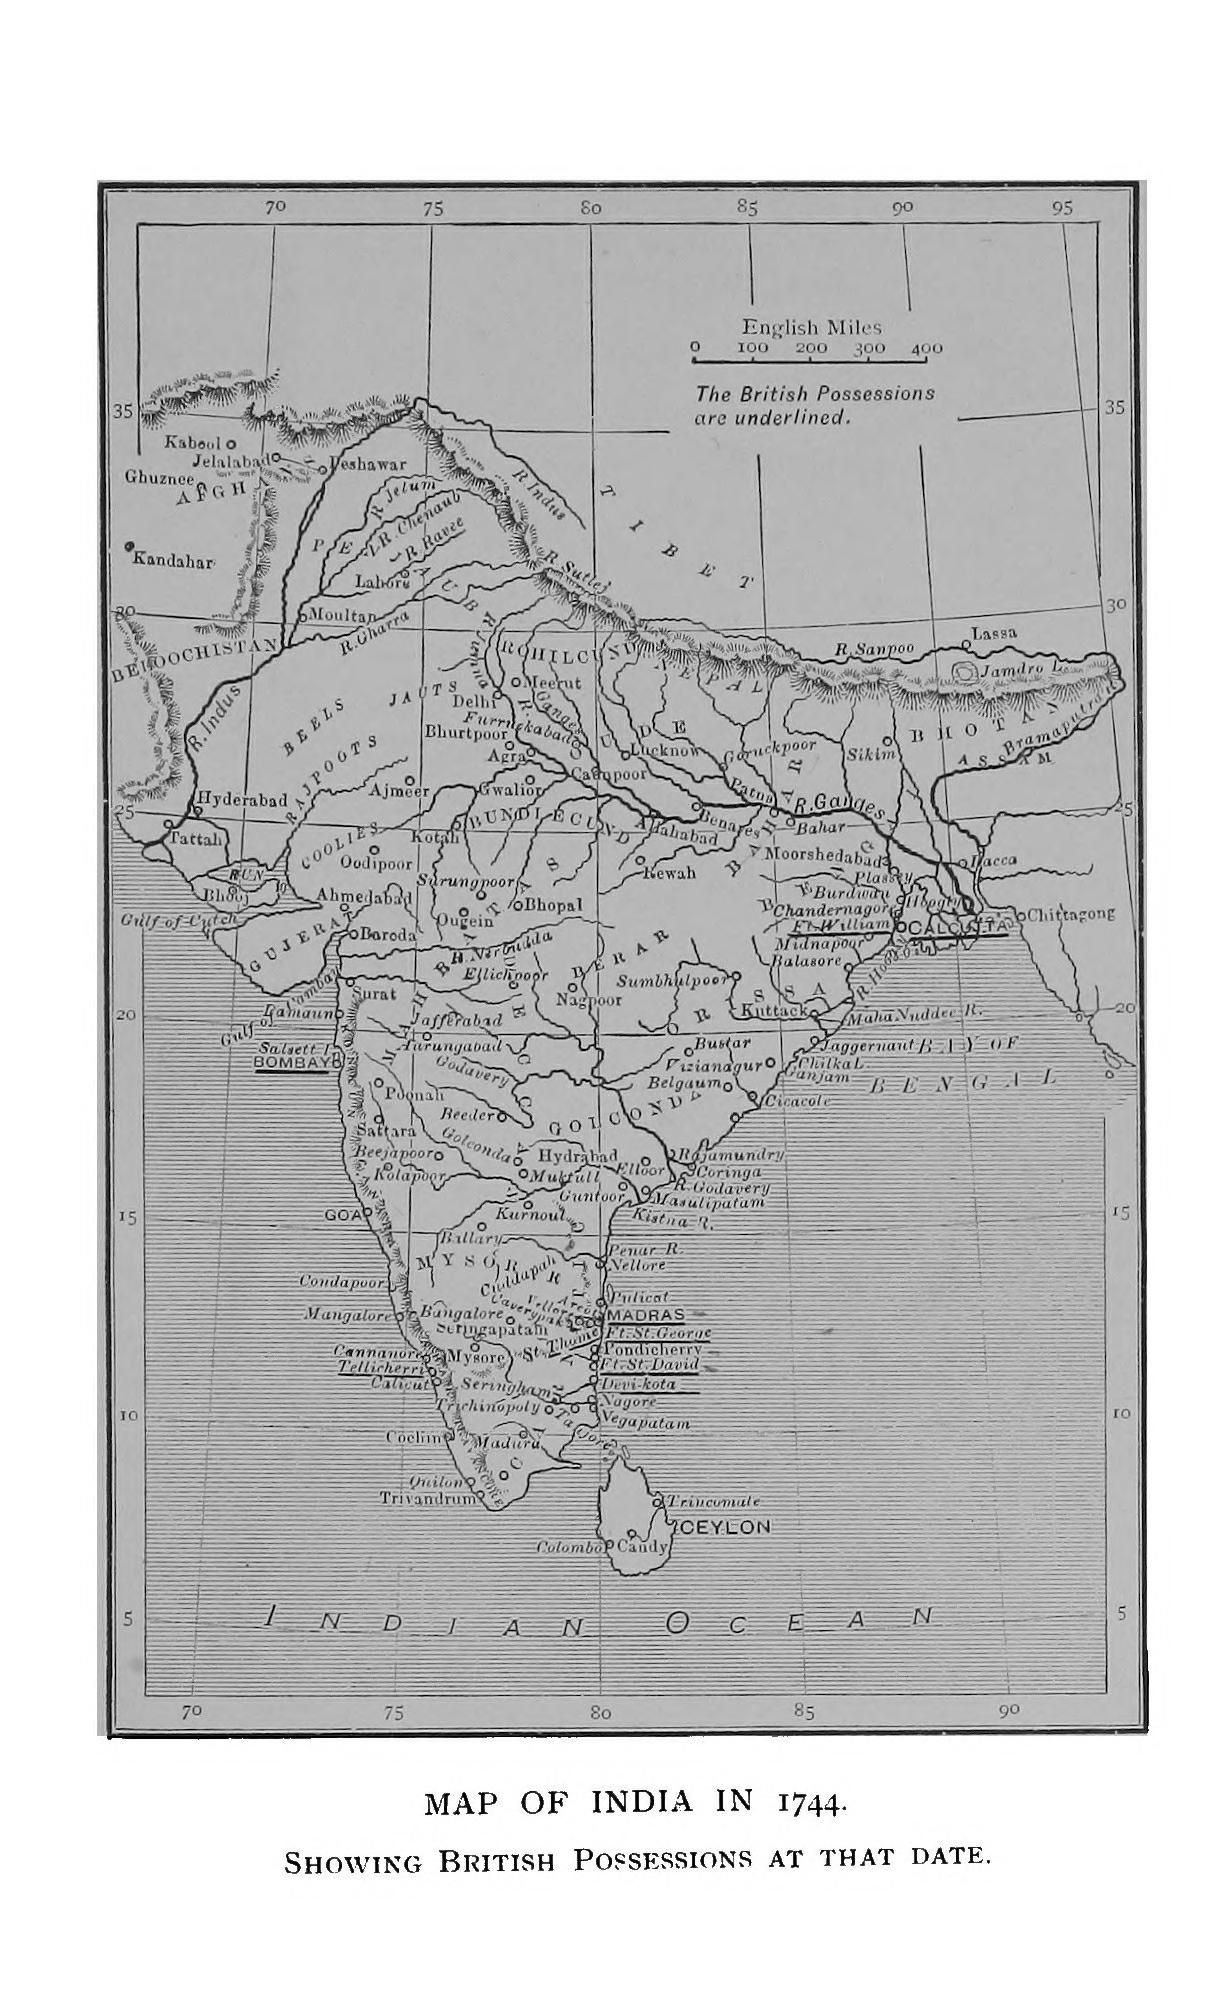 A map of the Indian subcontinent showing the British possessions in 1744